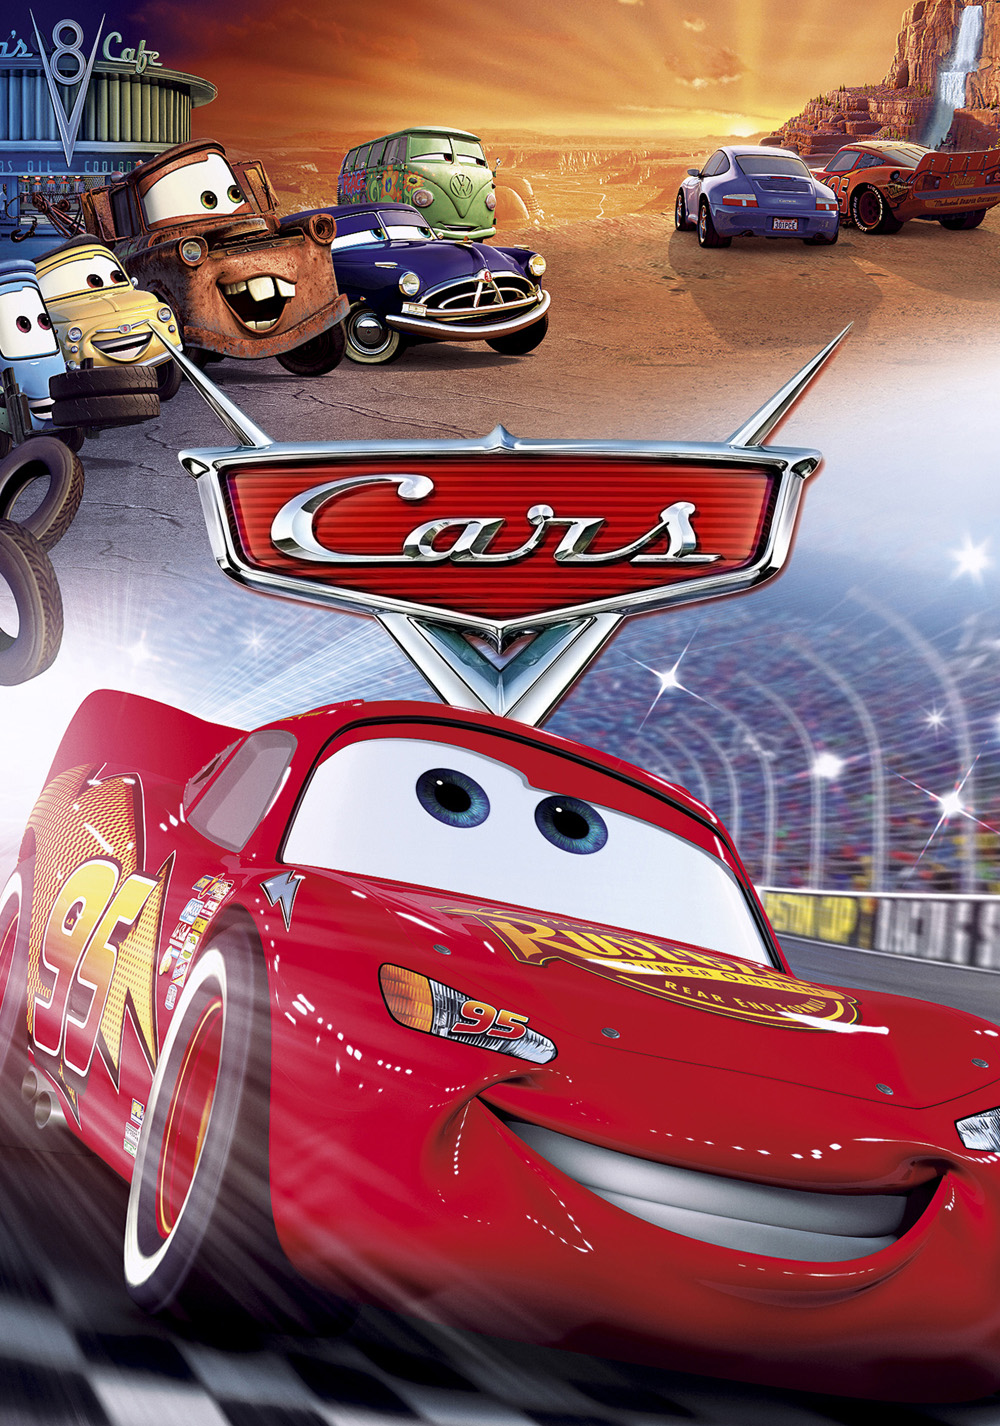 Cars (2006; animated)